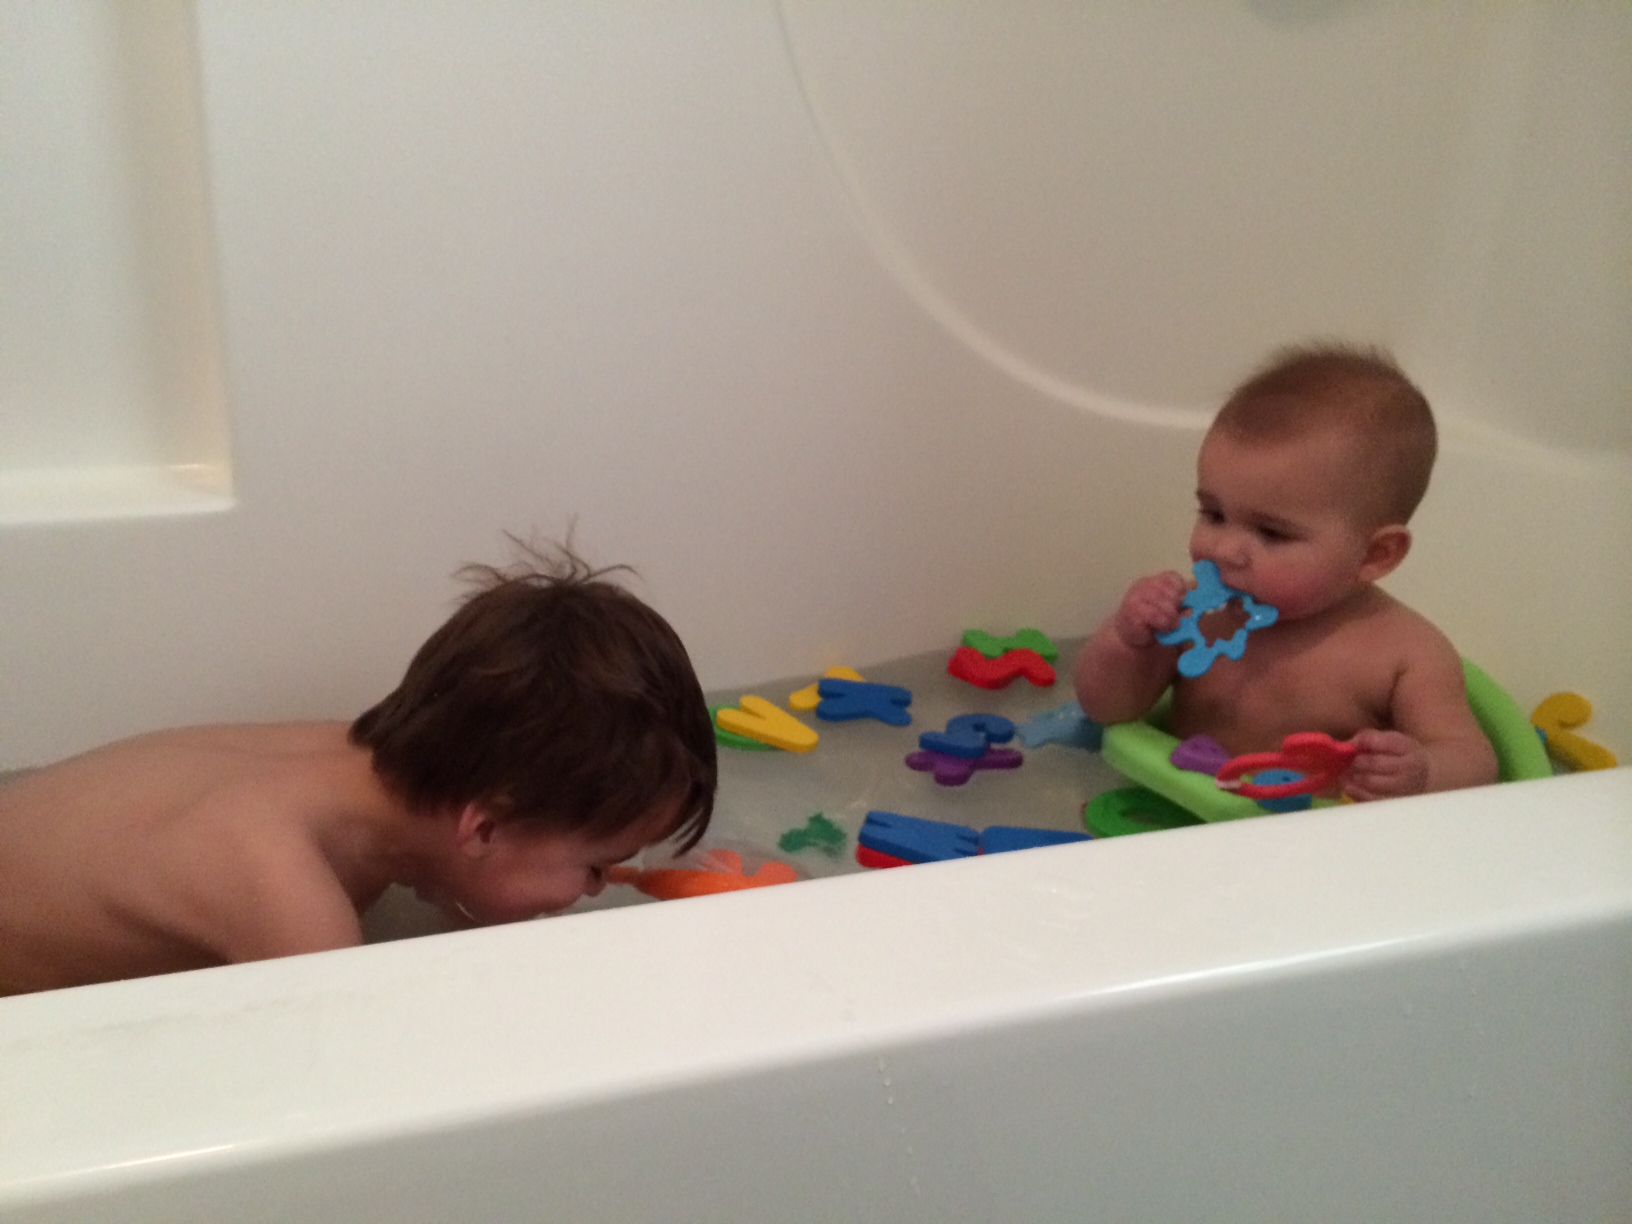 Amazing Keter Bath Seat Pictures Inspiration - Bathtub for ...